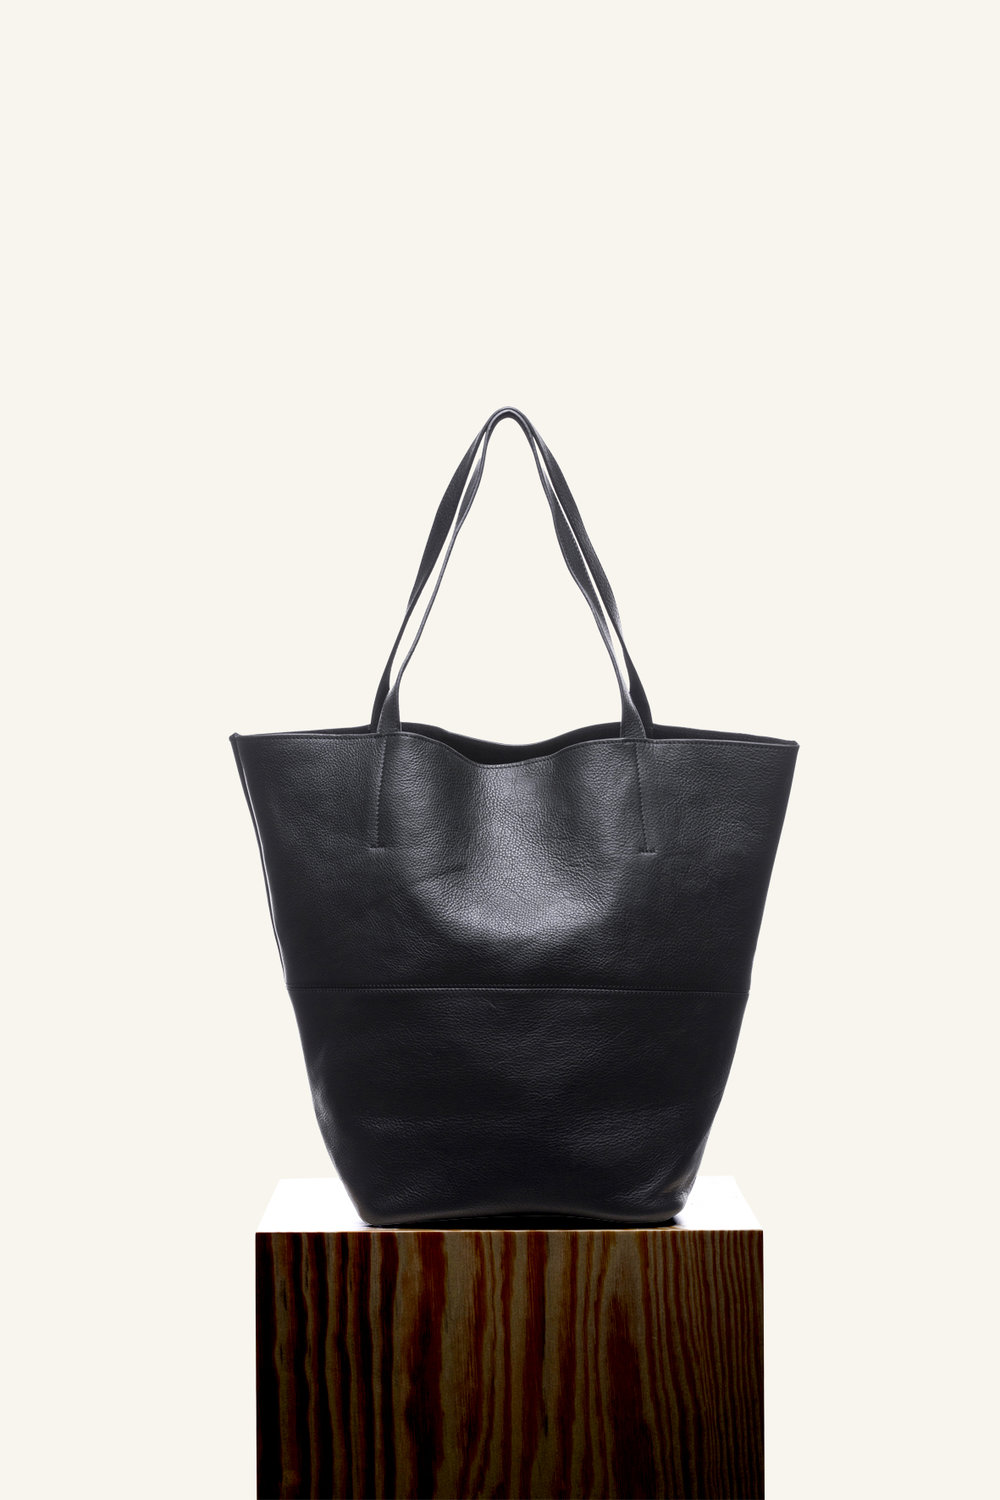 Dixie tote black new.jpg